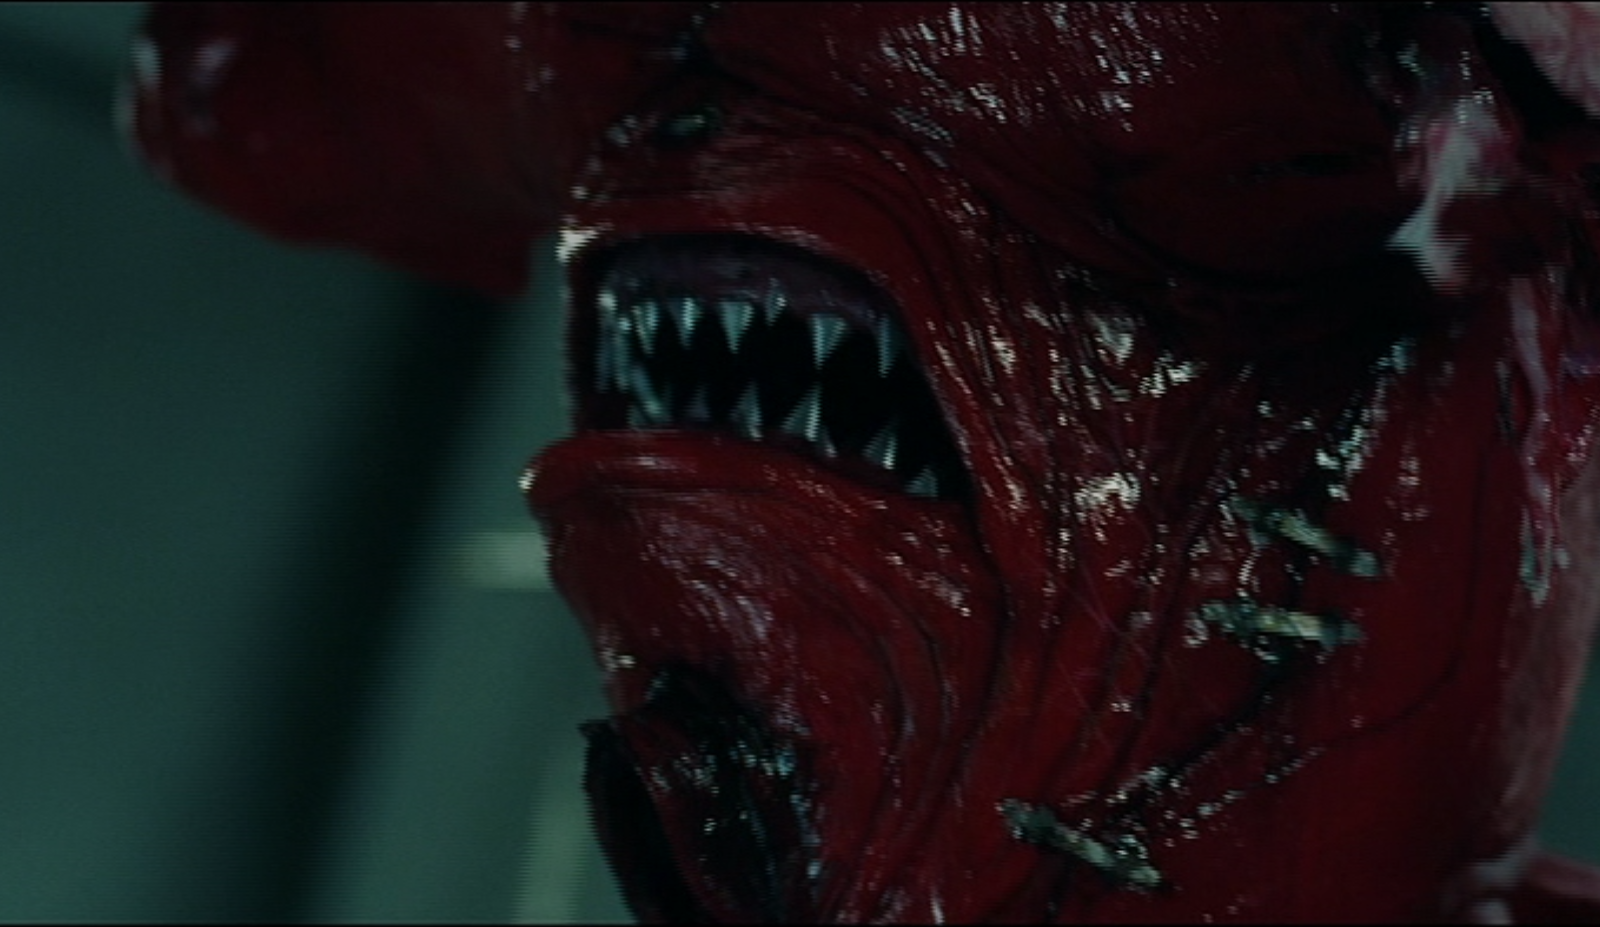 Looks incredibly practical - odd considering some of the other effects in this movie.